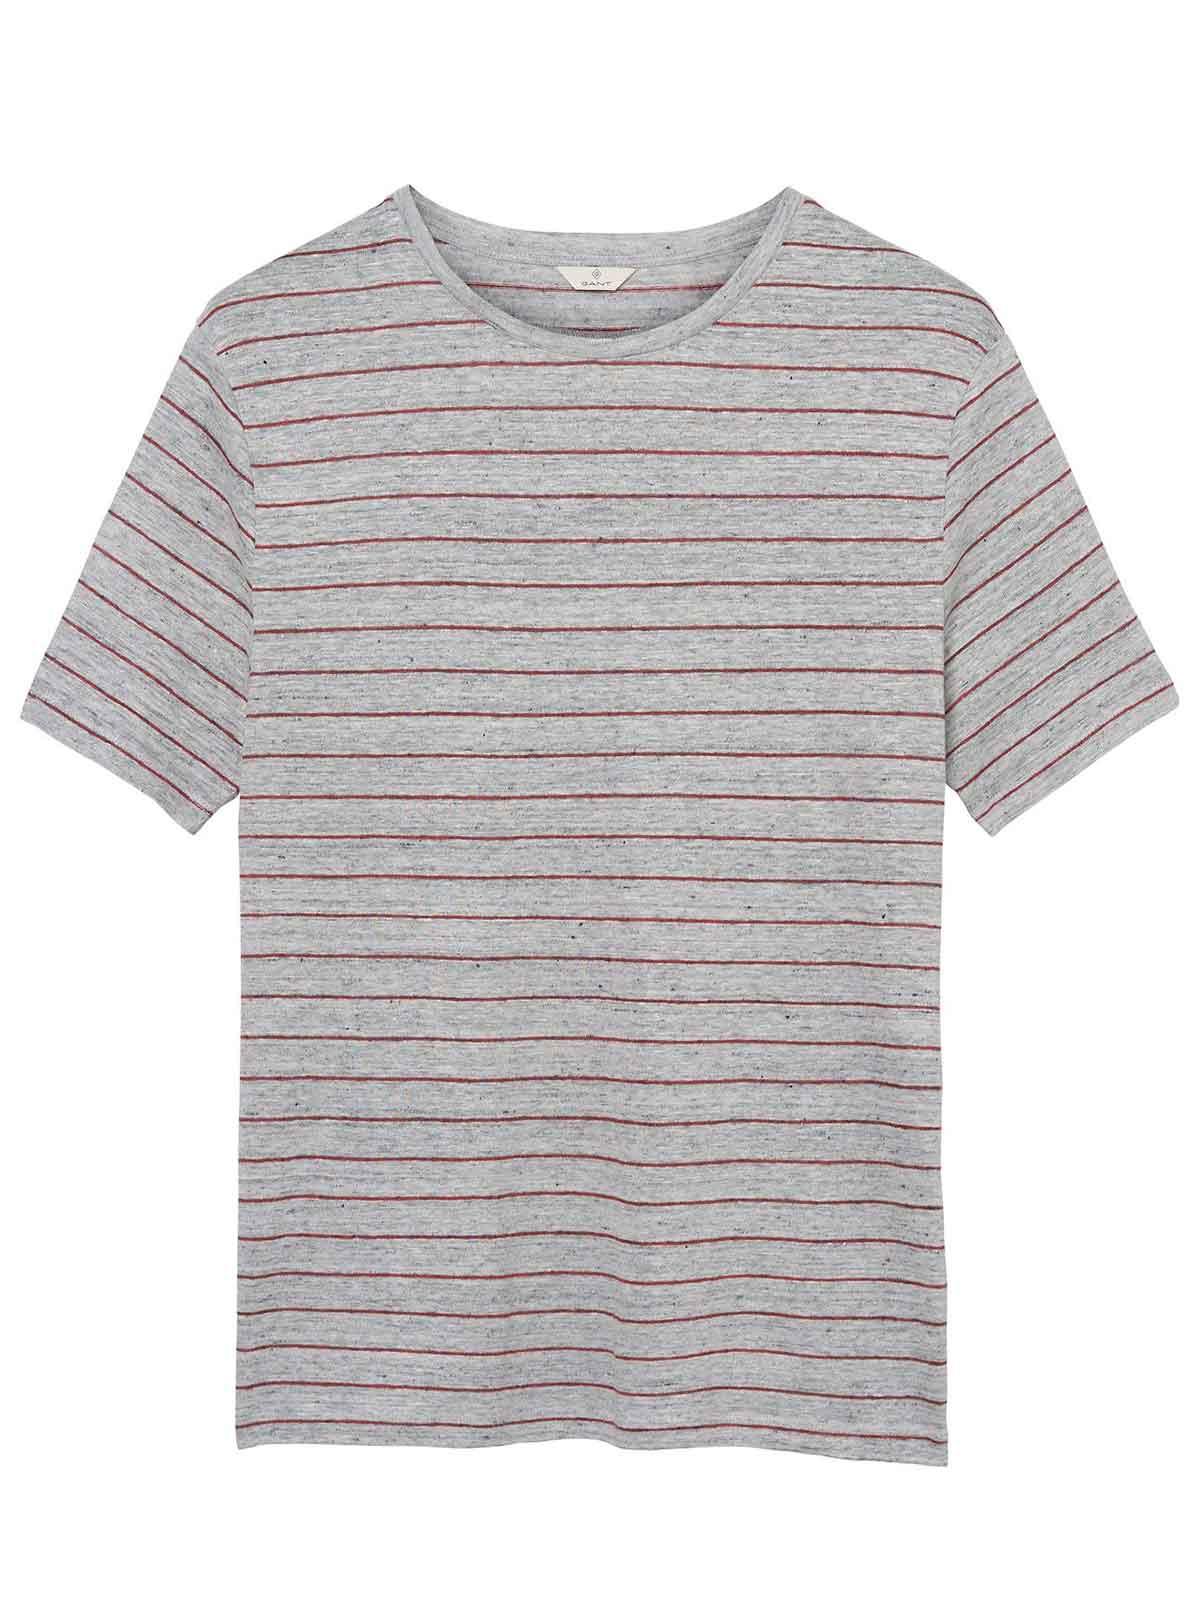 Picture of GANT | Men's Striped Linen Tee